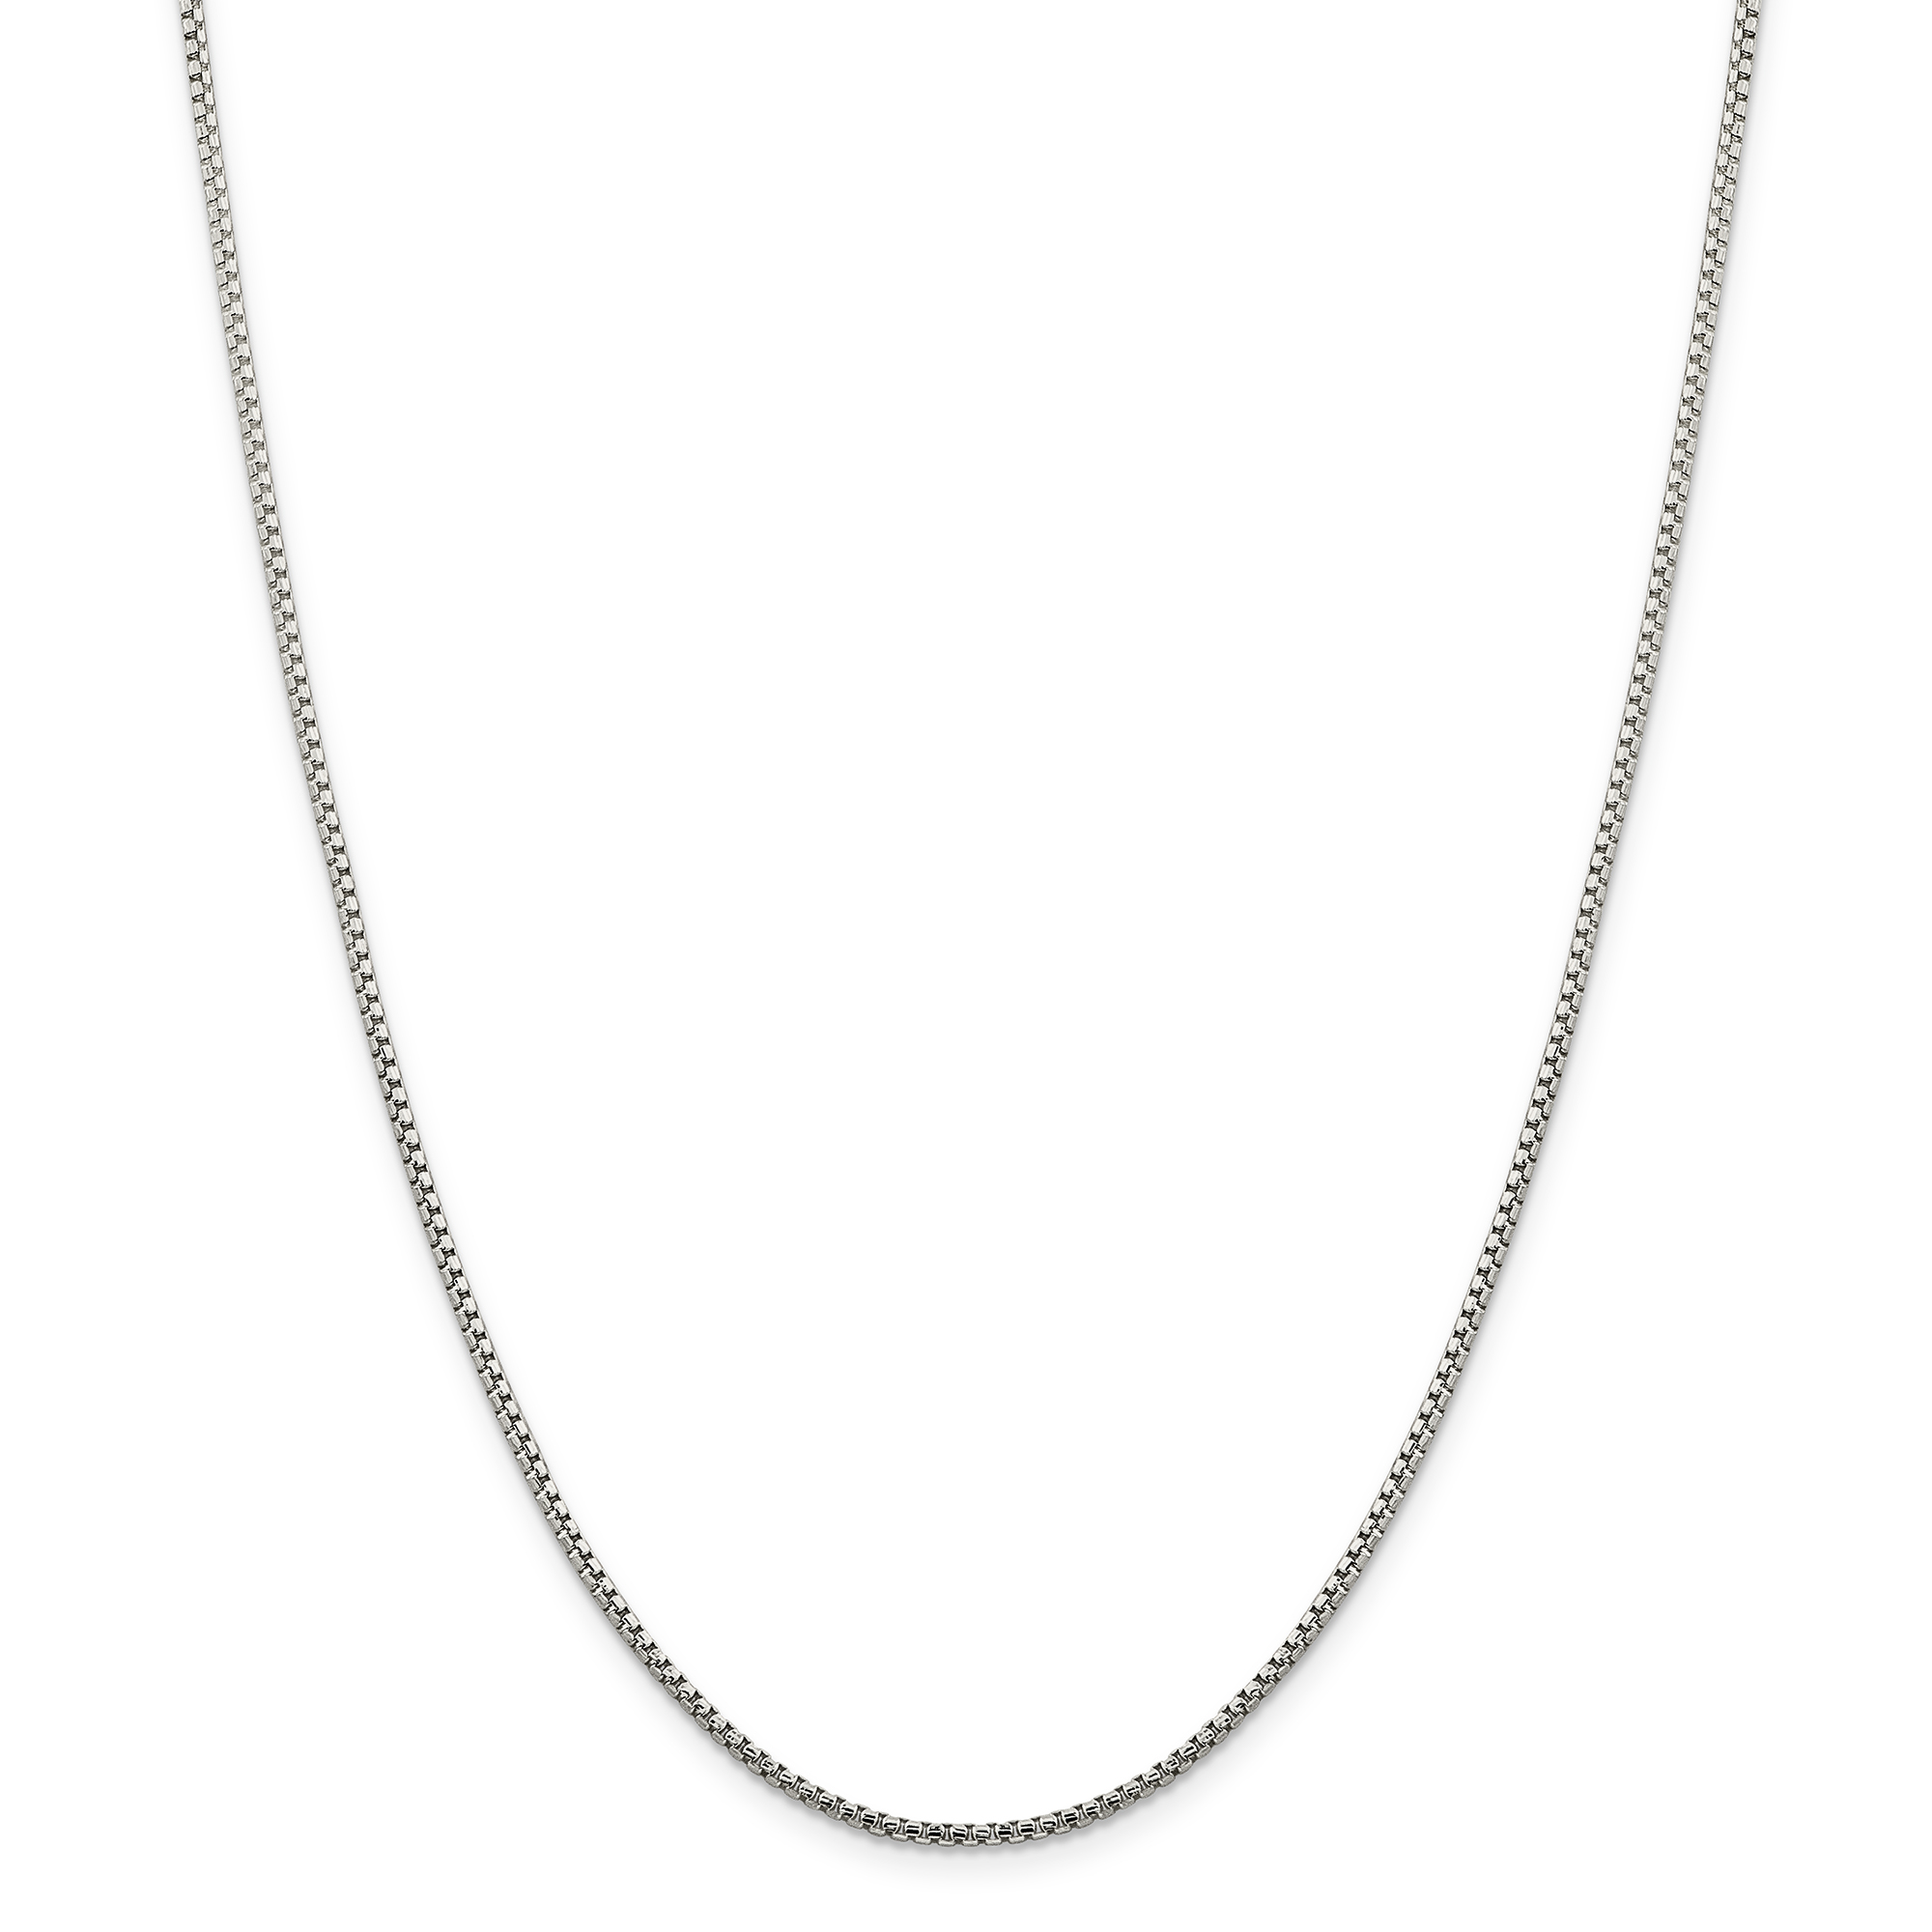 925 Sterling Silver 1.75mm Round Link Box Chain Necklace 30 Inch Pendant Charm Fine Jewelry Gifts For Women For Her - image 5 of 5